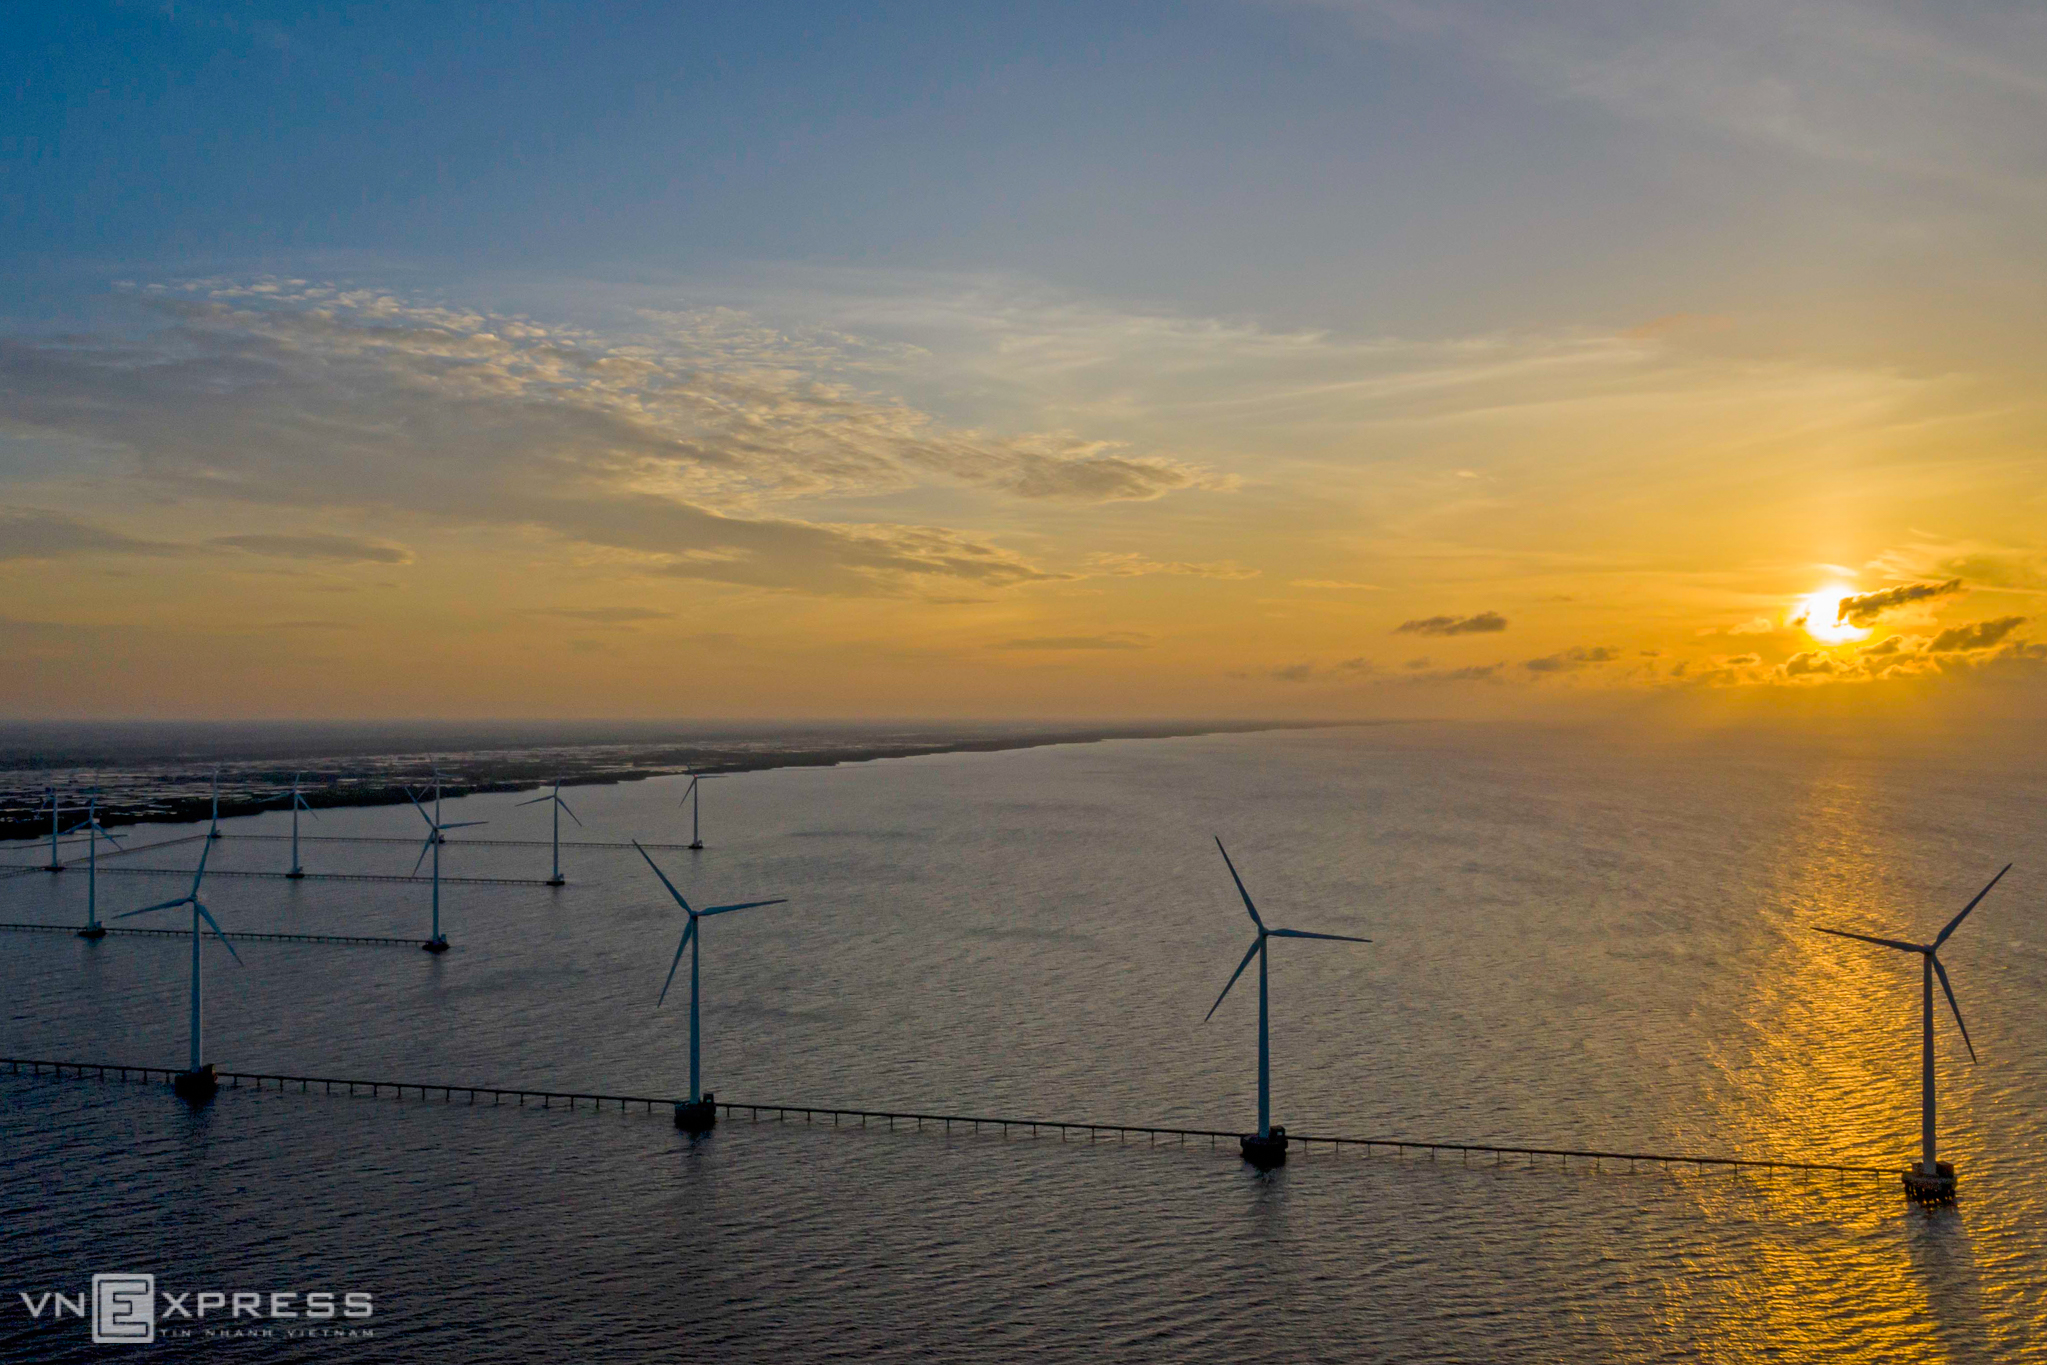 And offshore wind farm in Vietnams southern province of Bac Lieu, May 2020. Photo by VnExpress/Nguyet Nhi